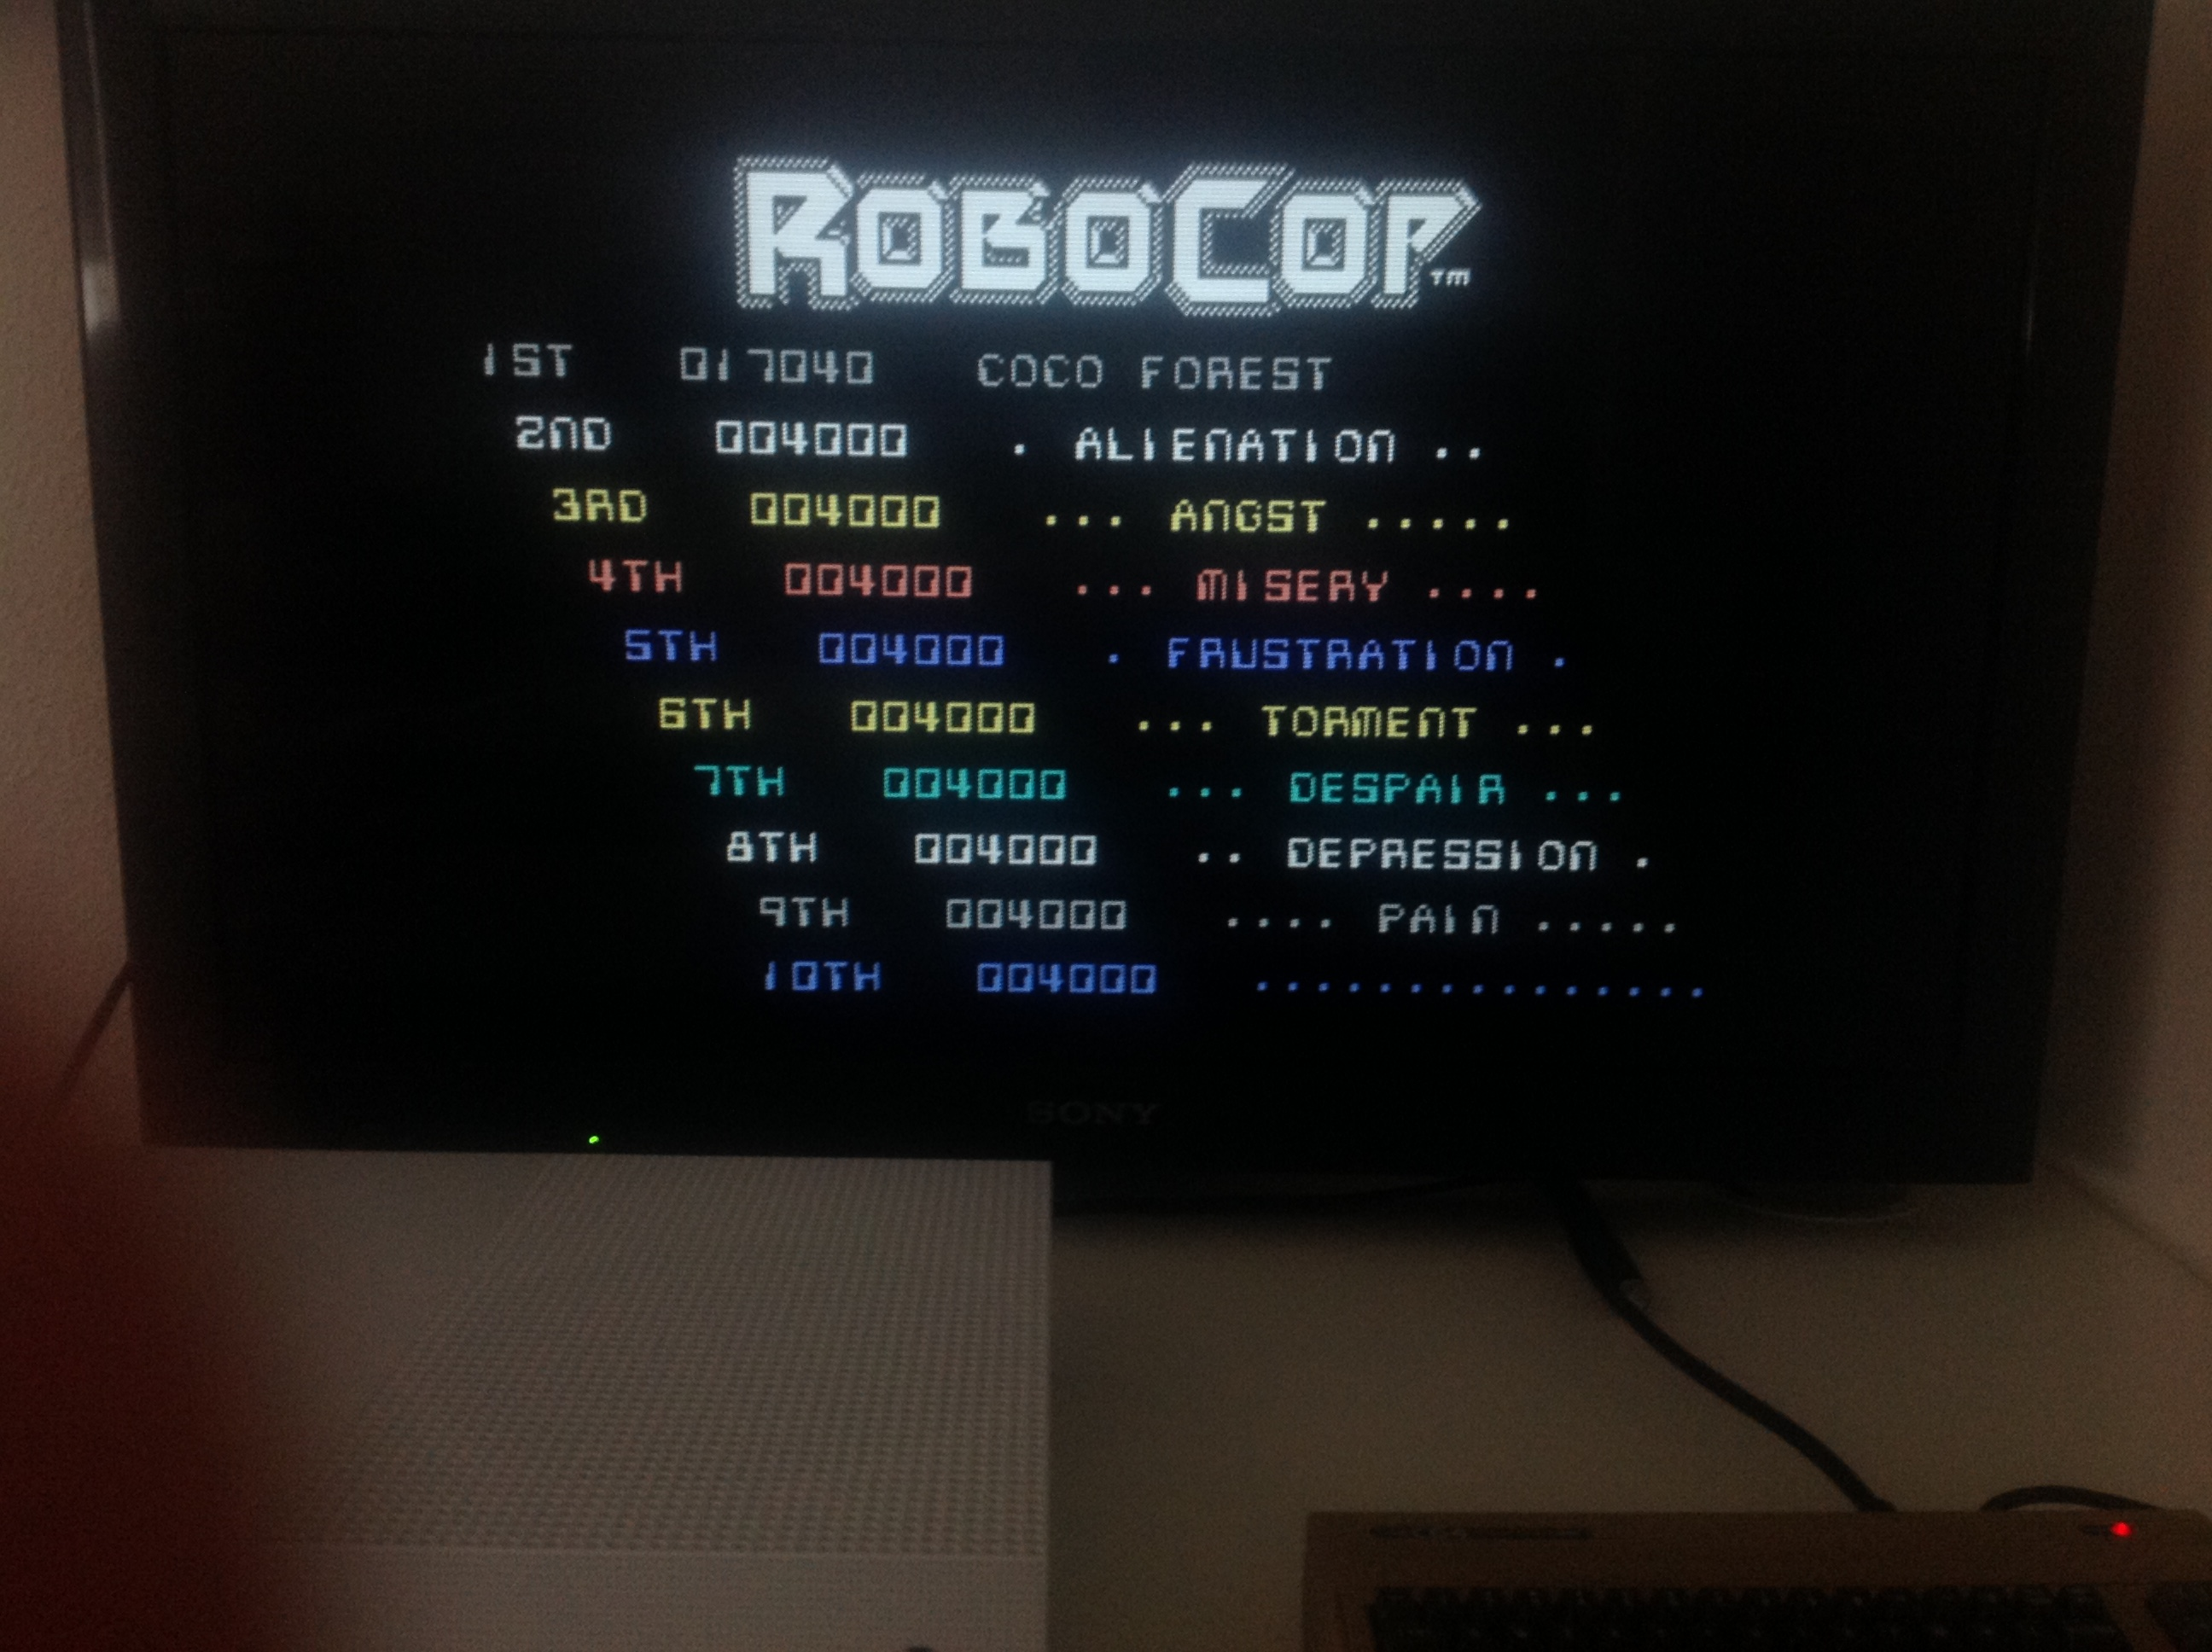 CoCoForest: RoboCop (Commodore 64 Emulated) 17,040 points on 2018-04-27 08:37:38